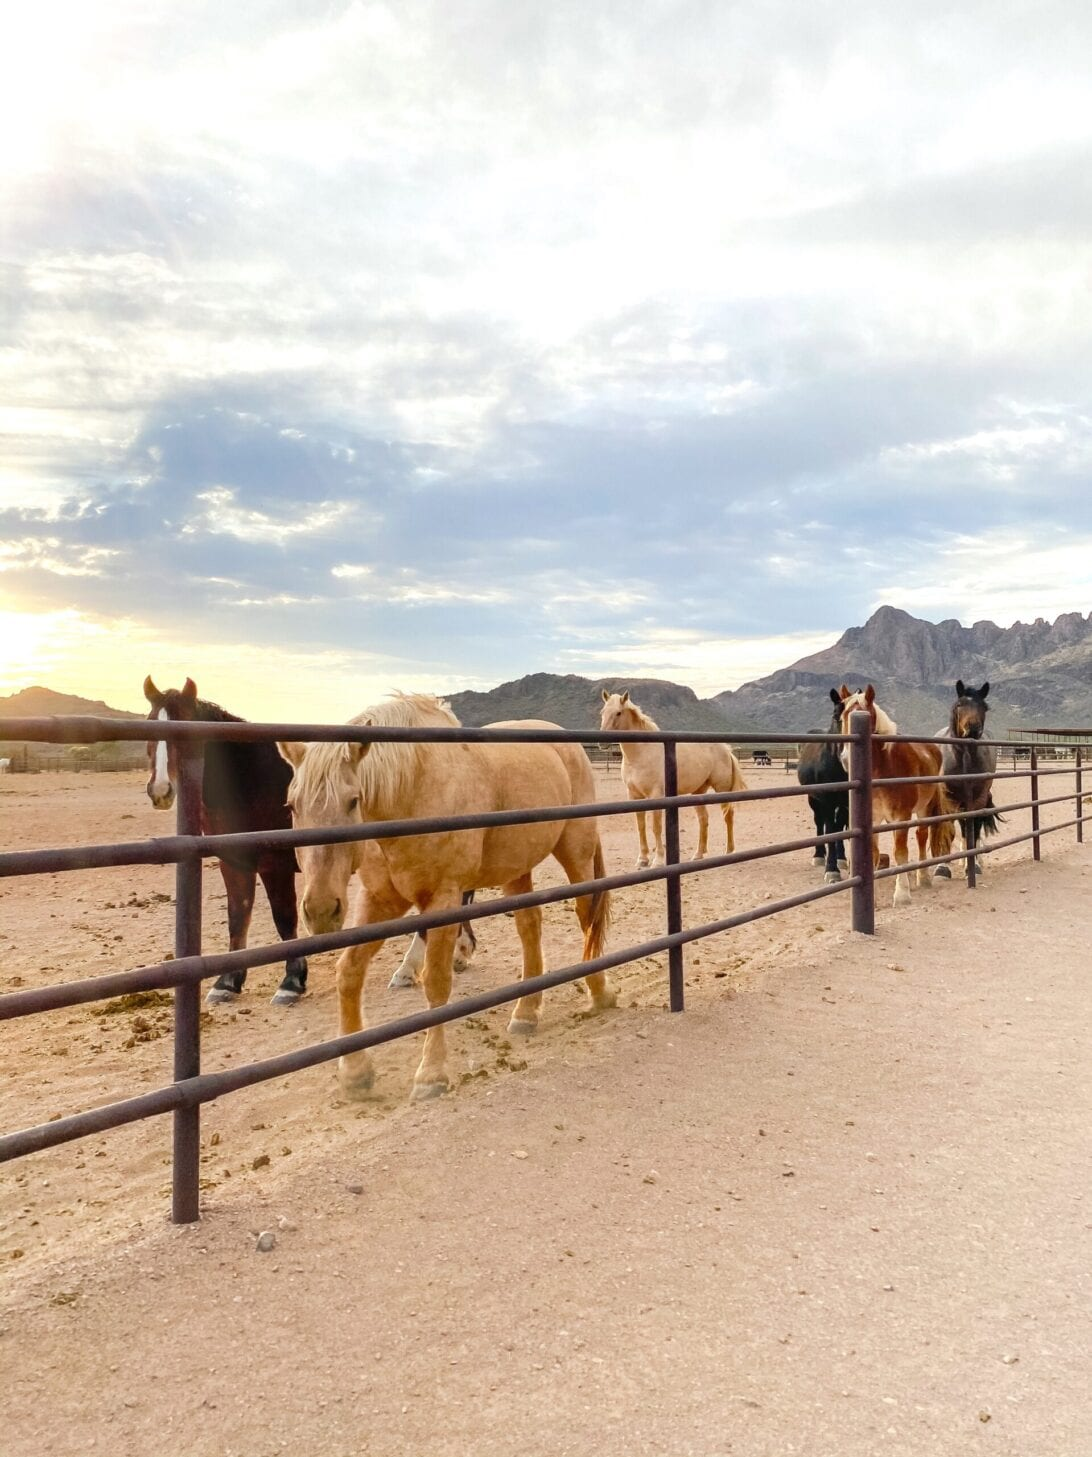 dude ranch, horses, Arizona, White Stallion Ranch